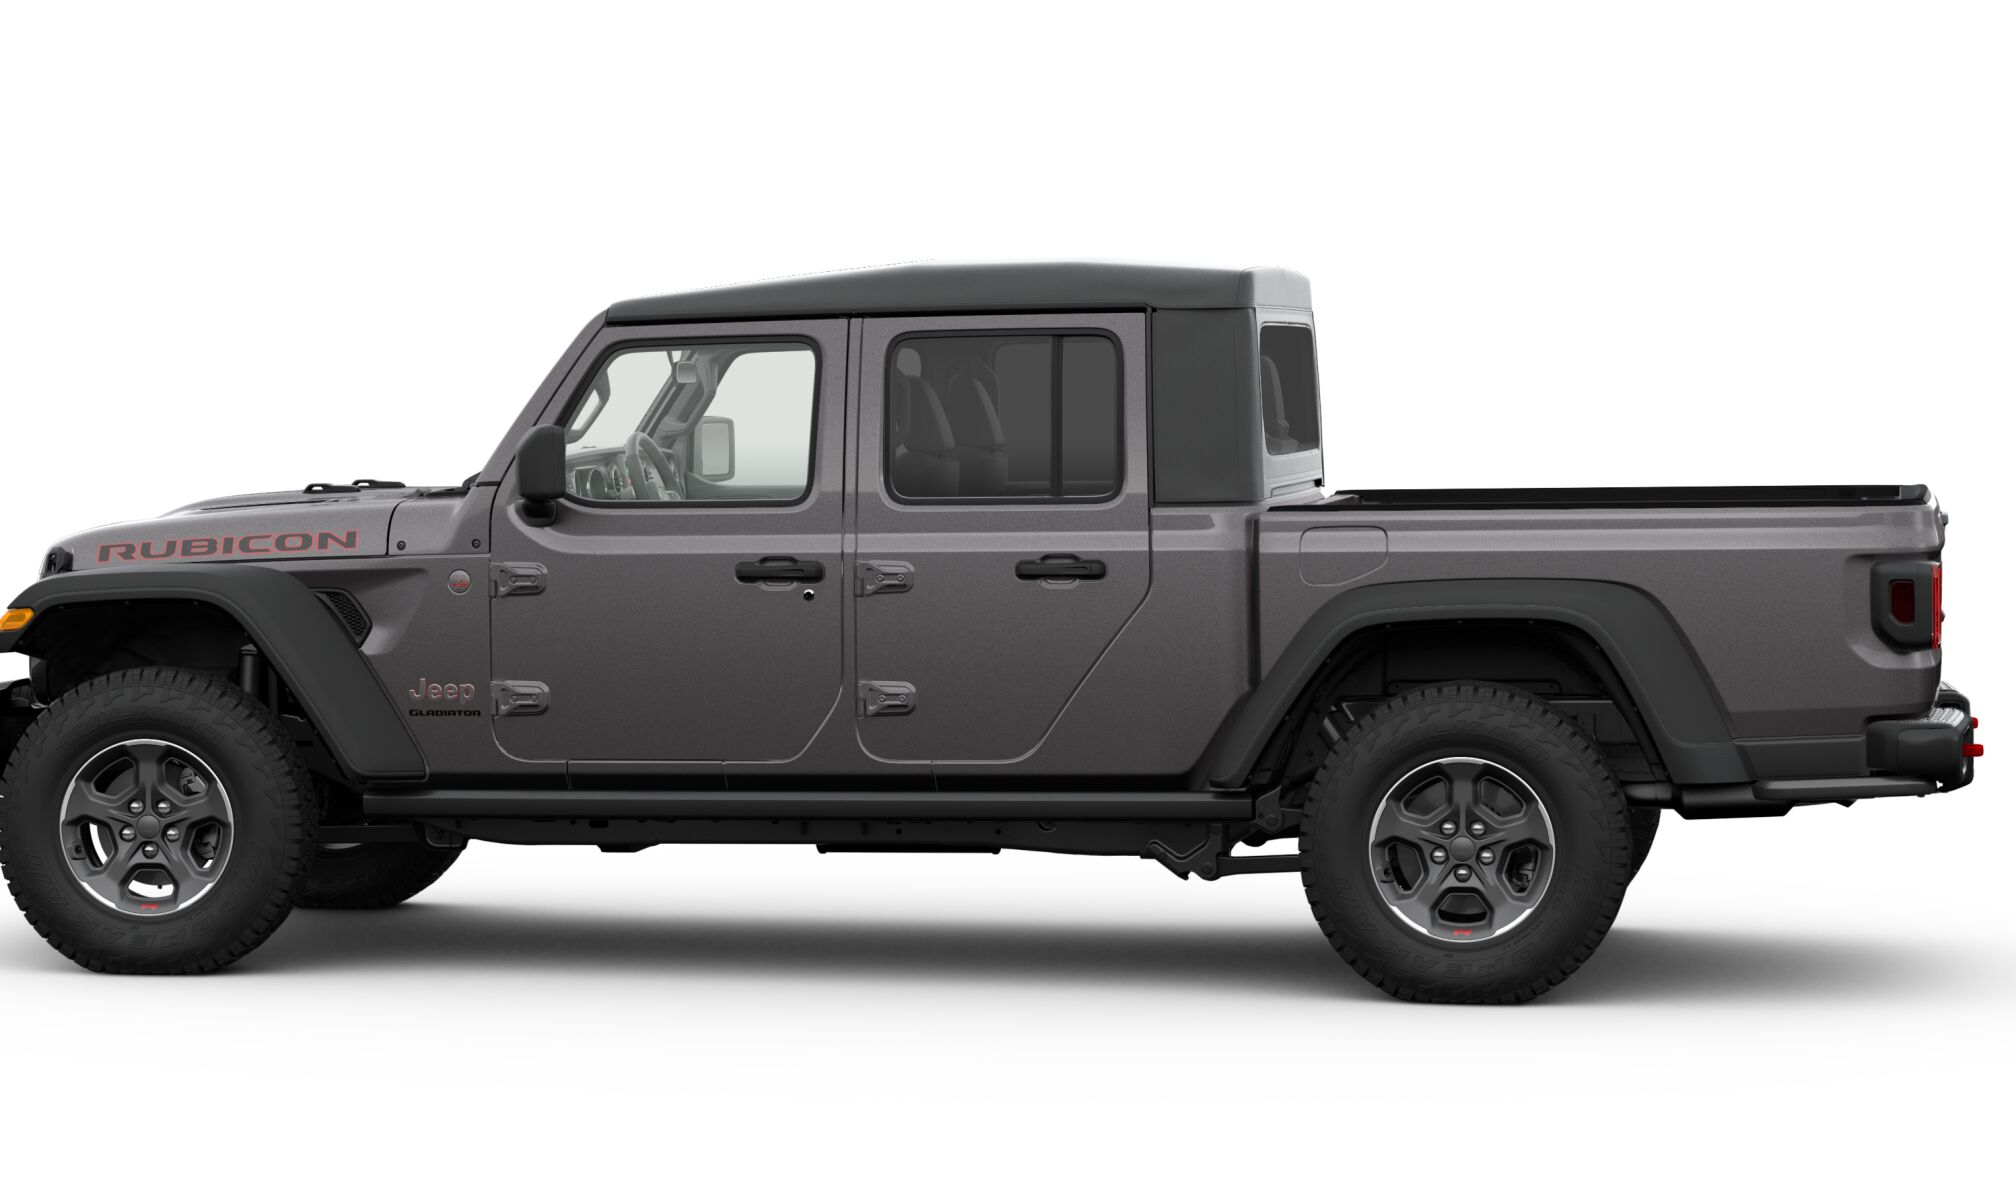 All-New 2020 Jeep Gladiator - It's Finally Here   Jeep Canada